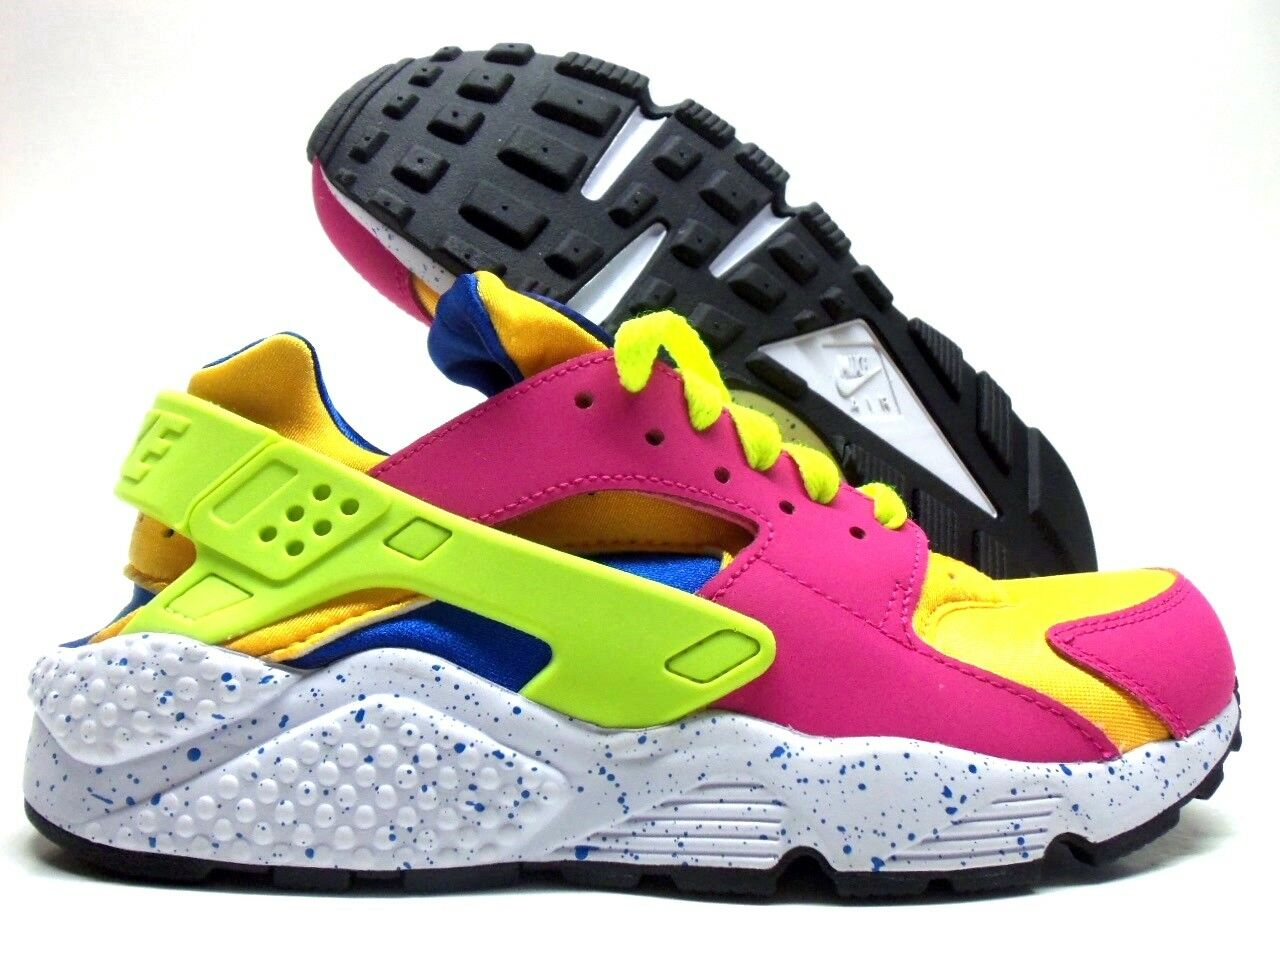 NIKE AIR HUARACHE RUN ID VIVID PINK YELLOW-WHITE-LIME SZ WOMEN'S 7 [777331-972]